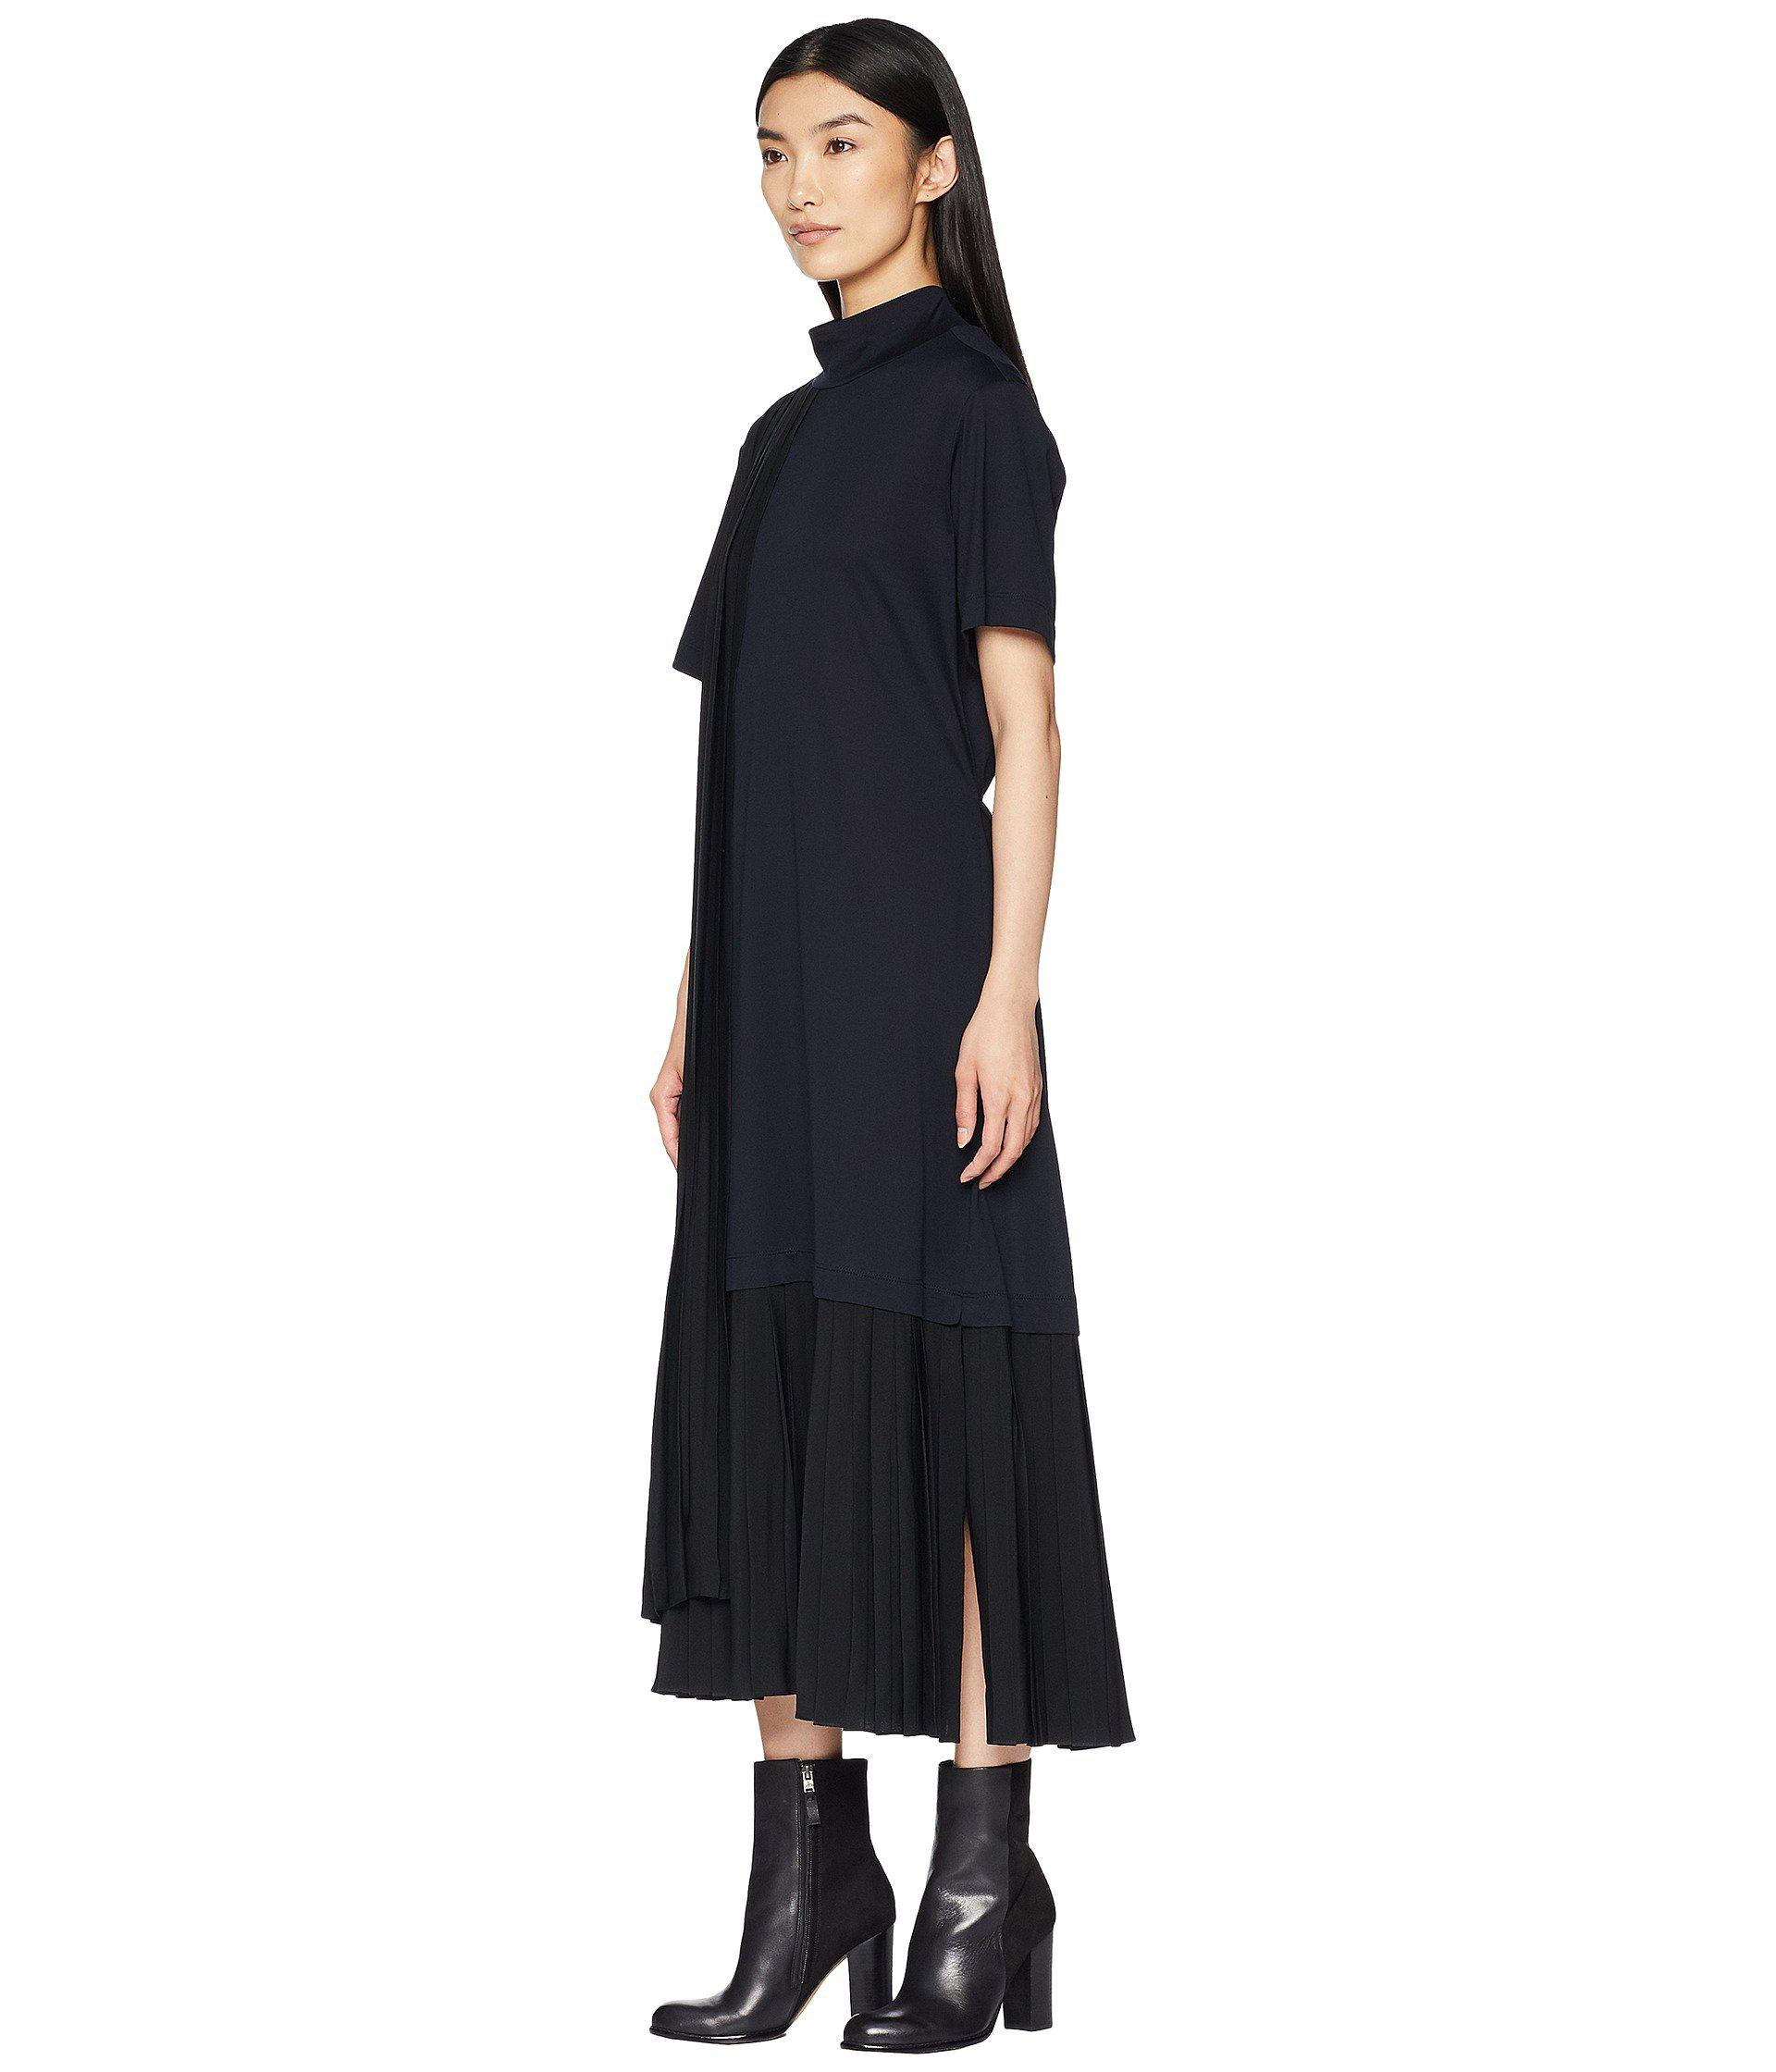 cc660898550e7 Jil Sander Navy Short Sleeve Dress Turtleneck And Plisst Details (navy) Women's  Dress in Blue - Lyst